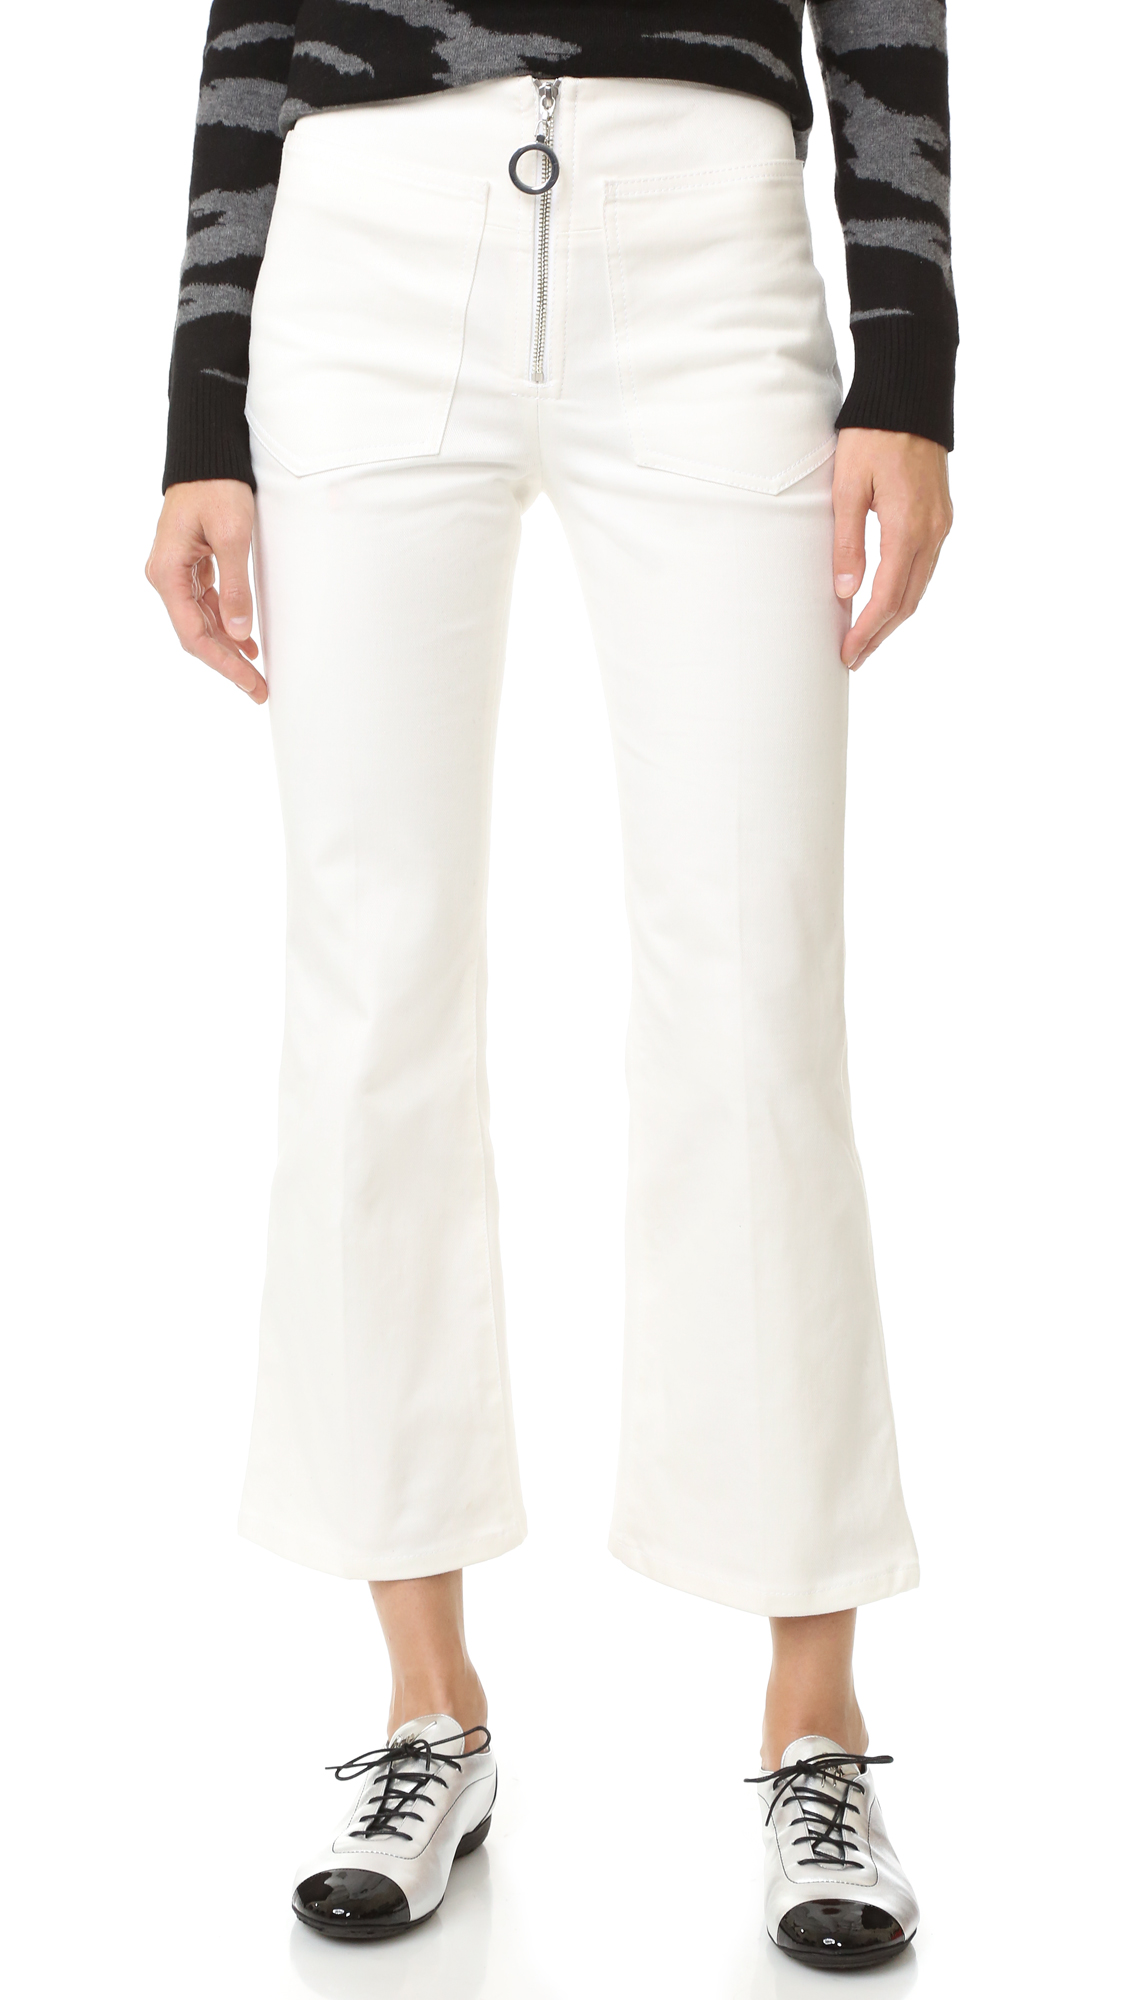 Edun Denim Flares - White at Shopbop